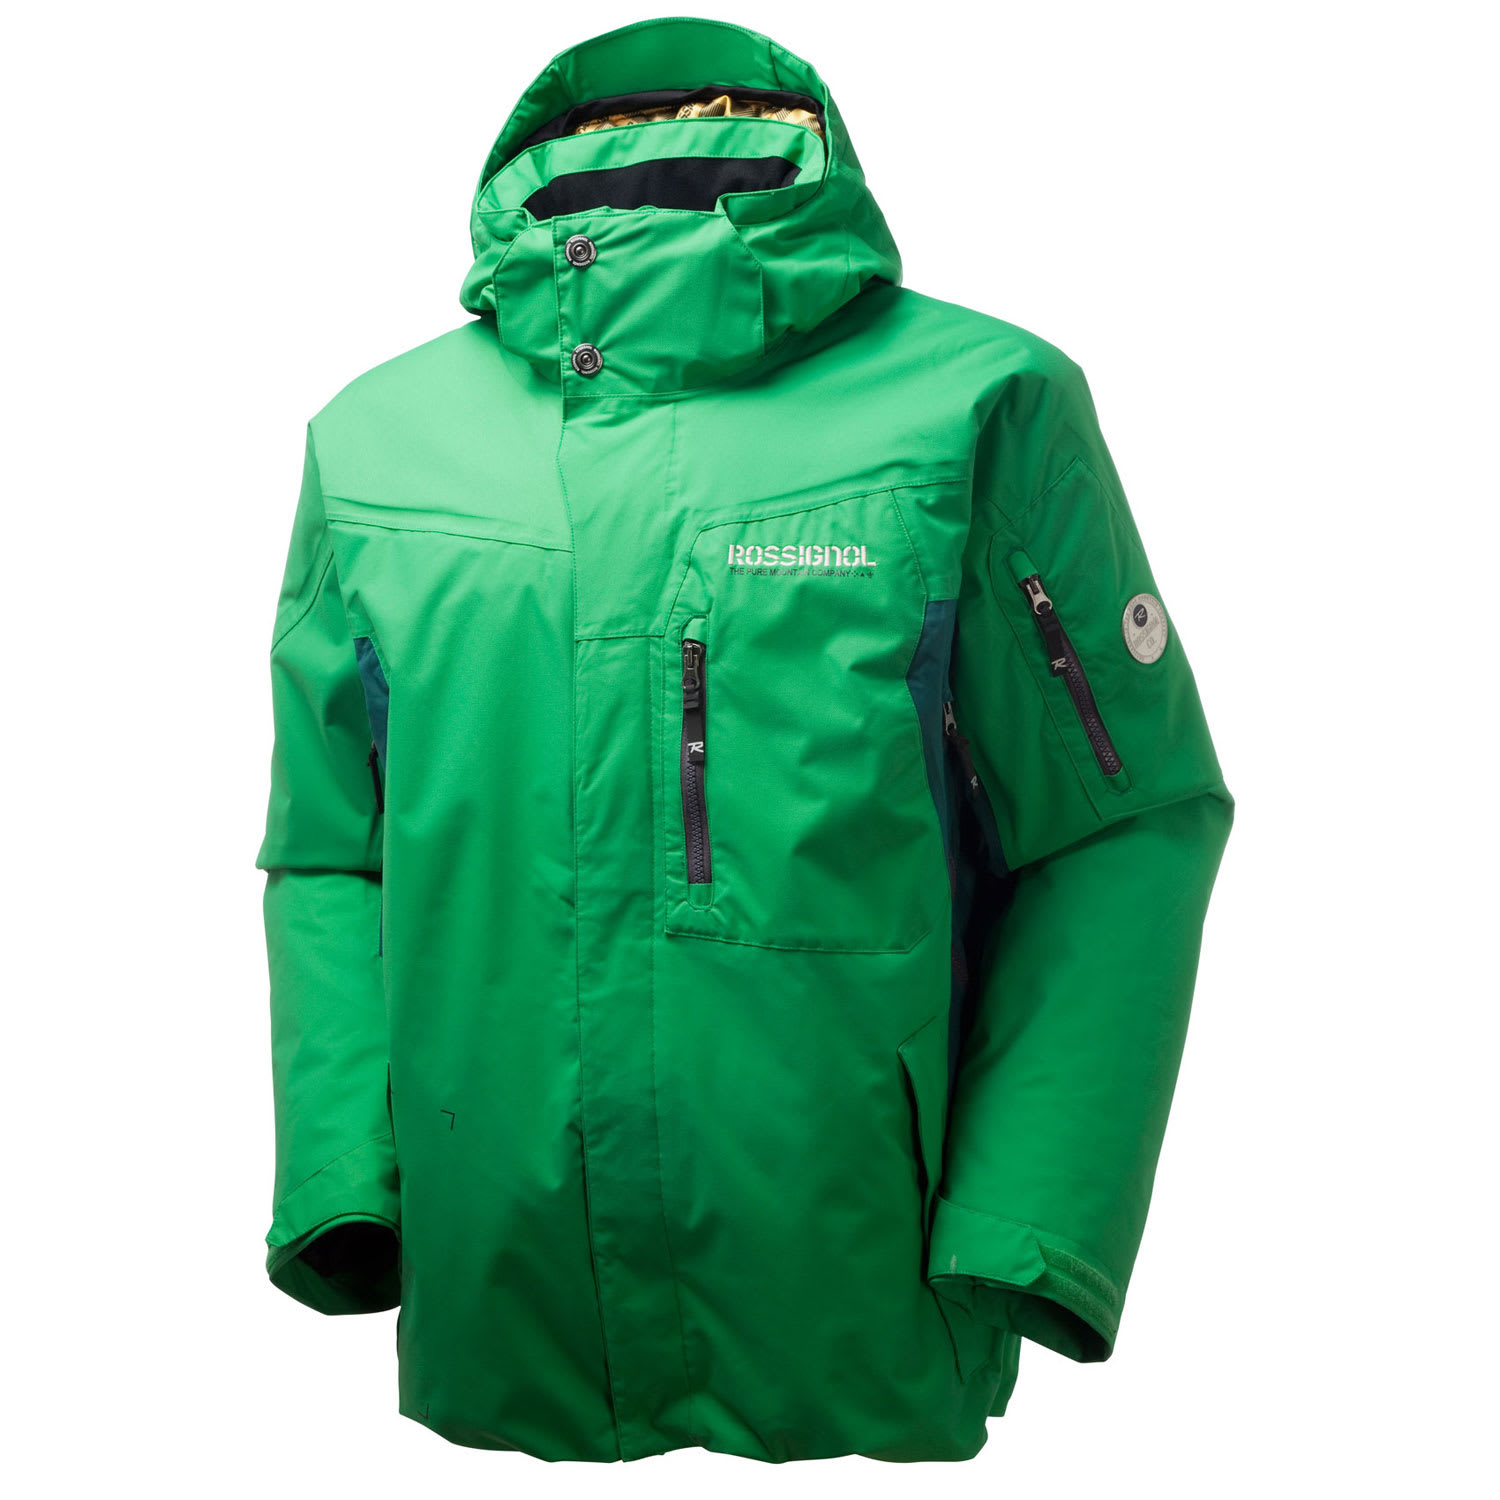 Shop for Rossignol Typhoon Ski Jacket Green - Men's